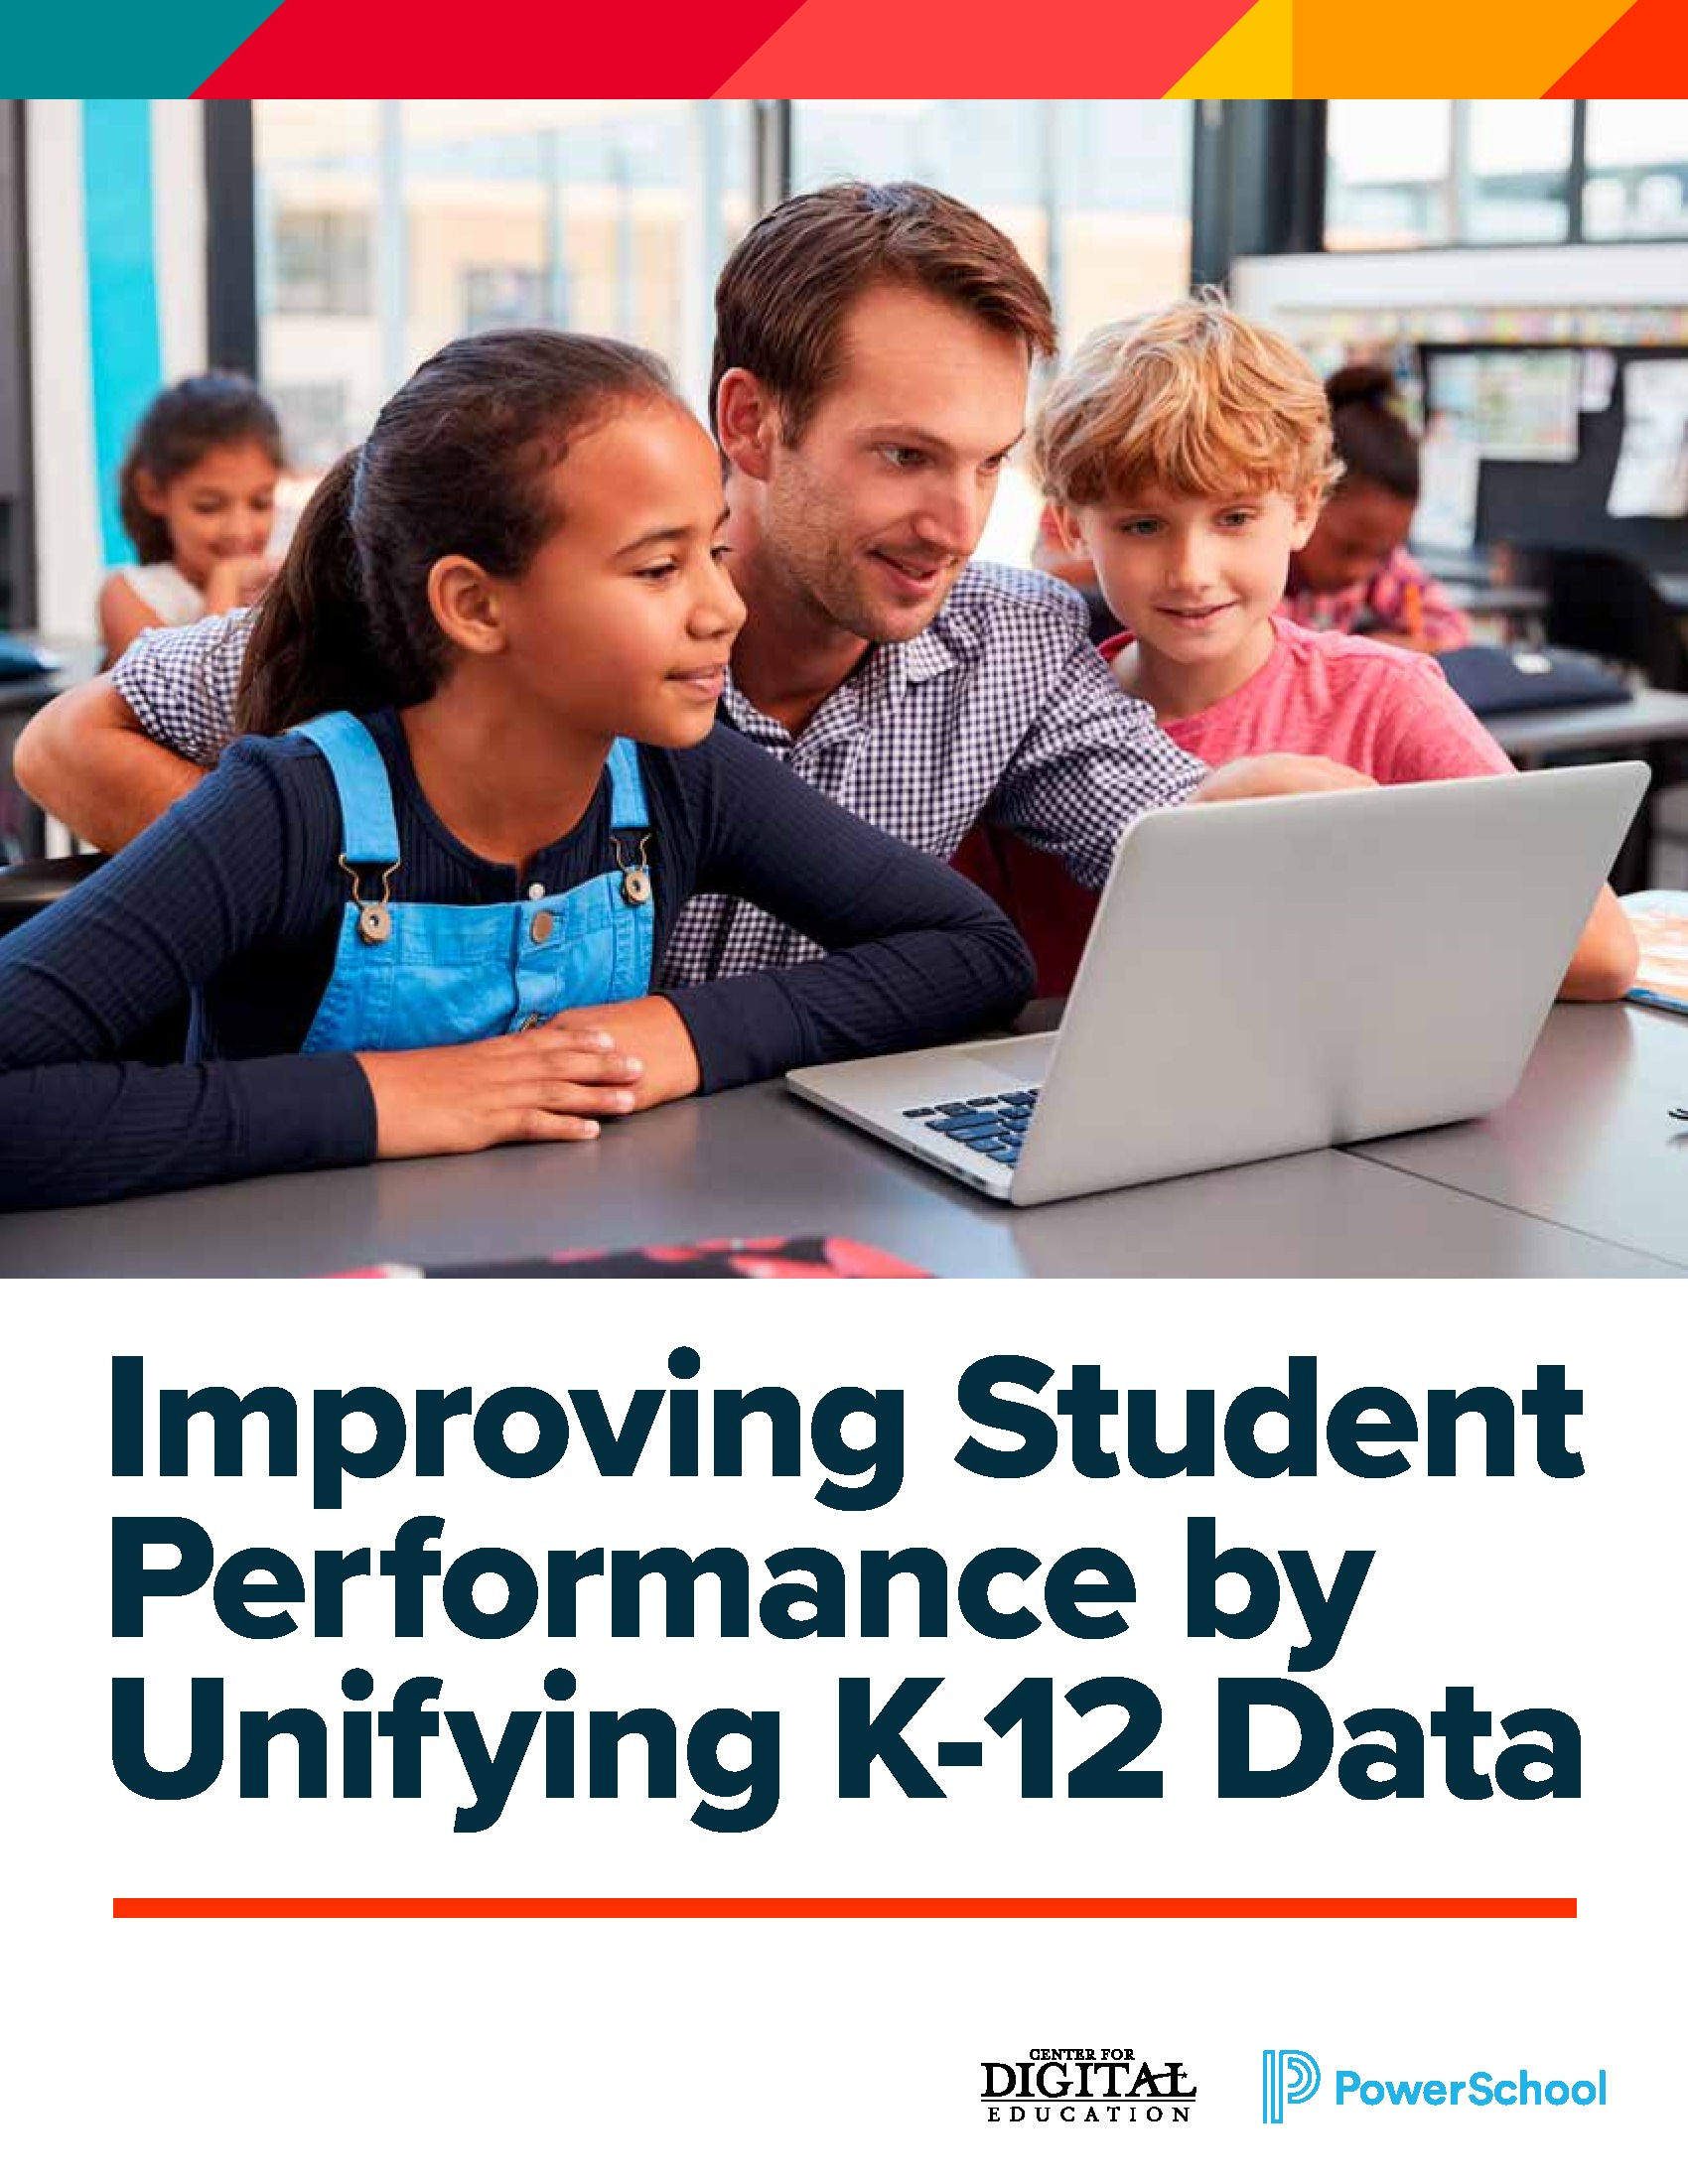 CDE - PowerSchool - TLP - 190621 - Improving Student Performance